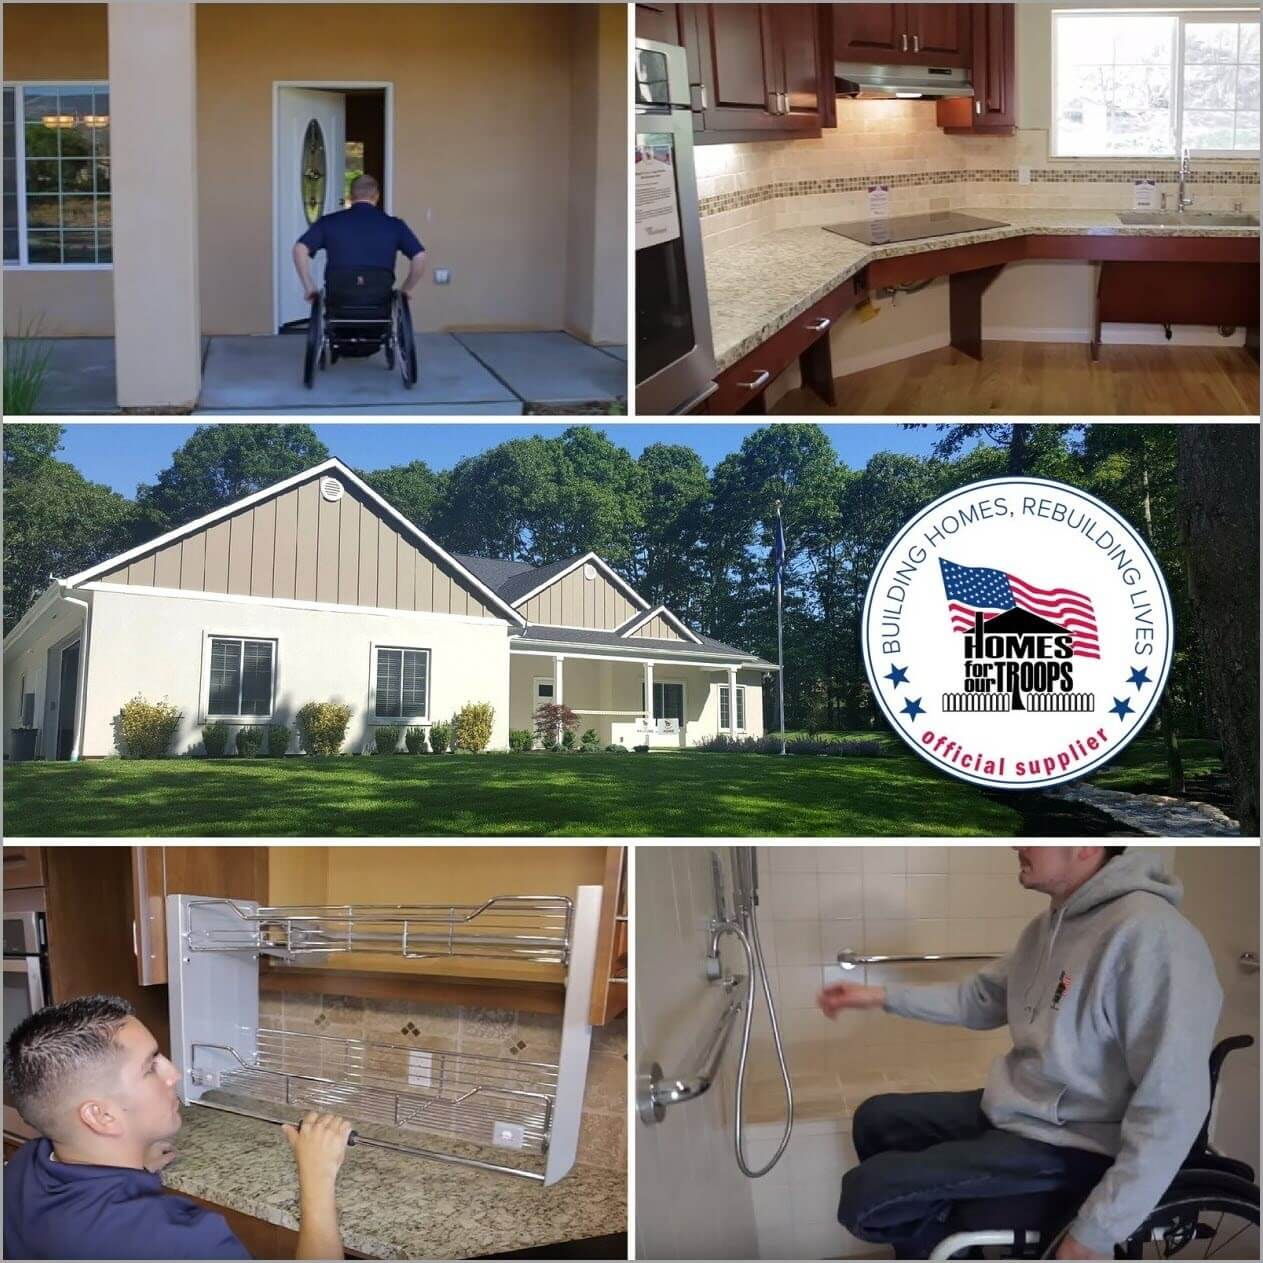 Special Adapted Homes for Injured Veterans